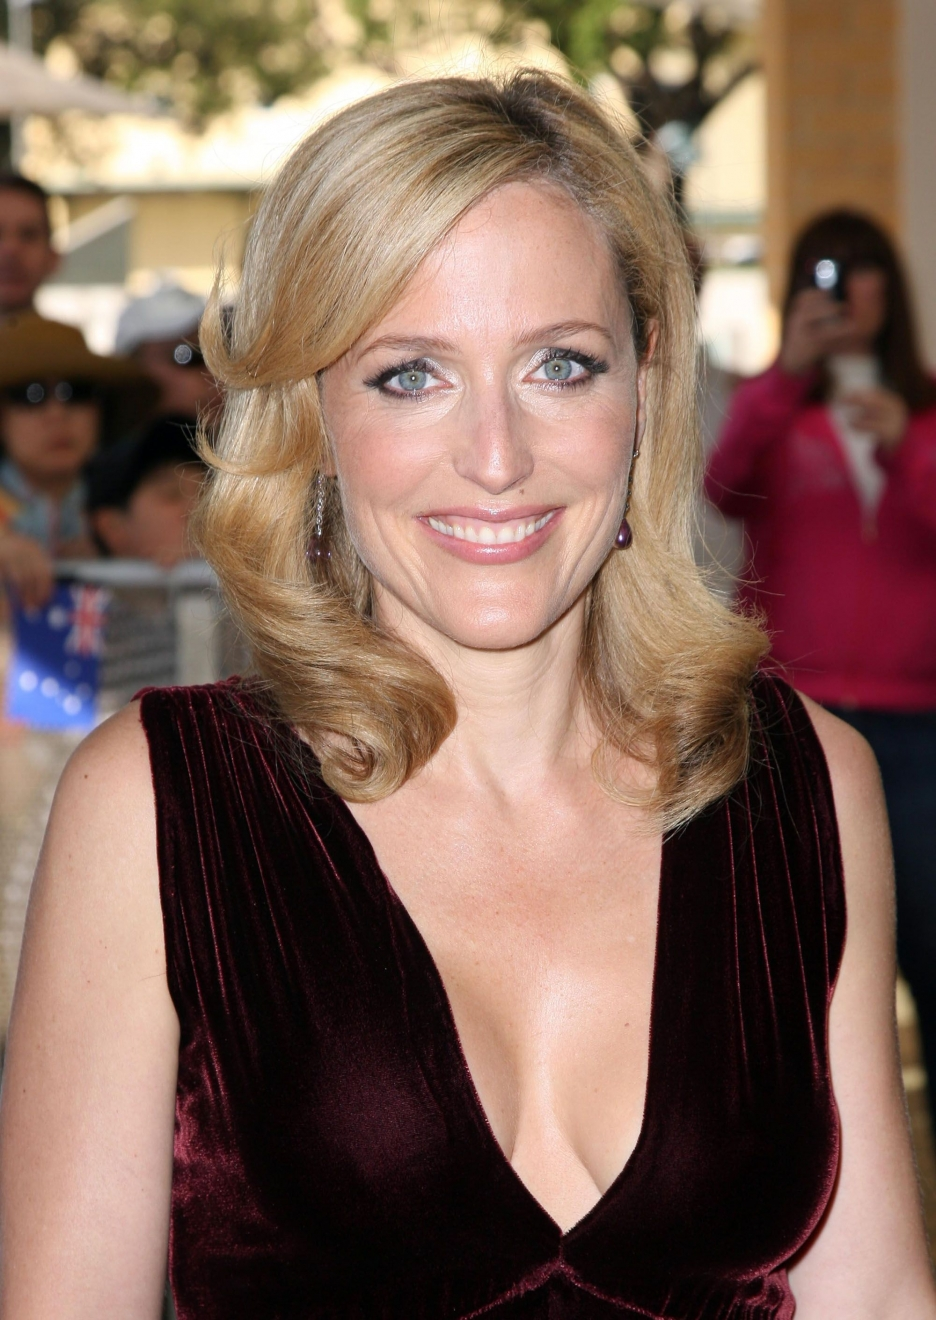 Watch Gillian Anderson born August 9, 1968 (age 50) video